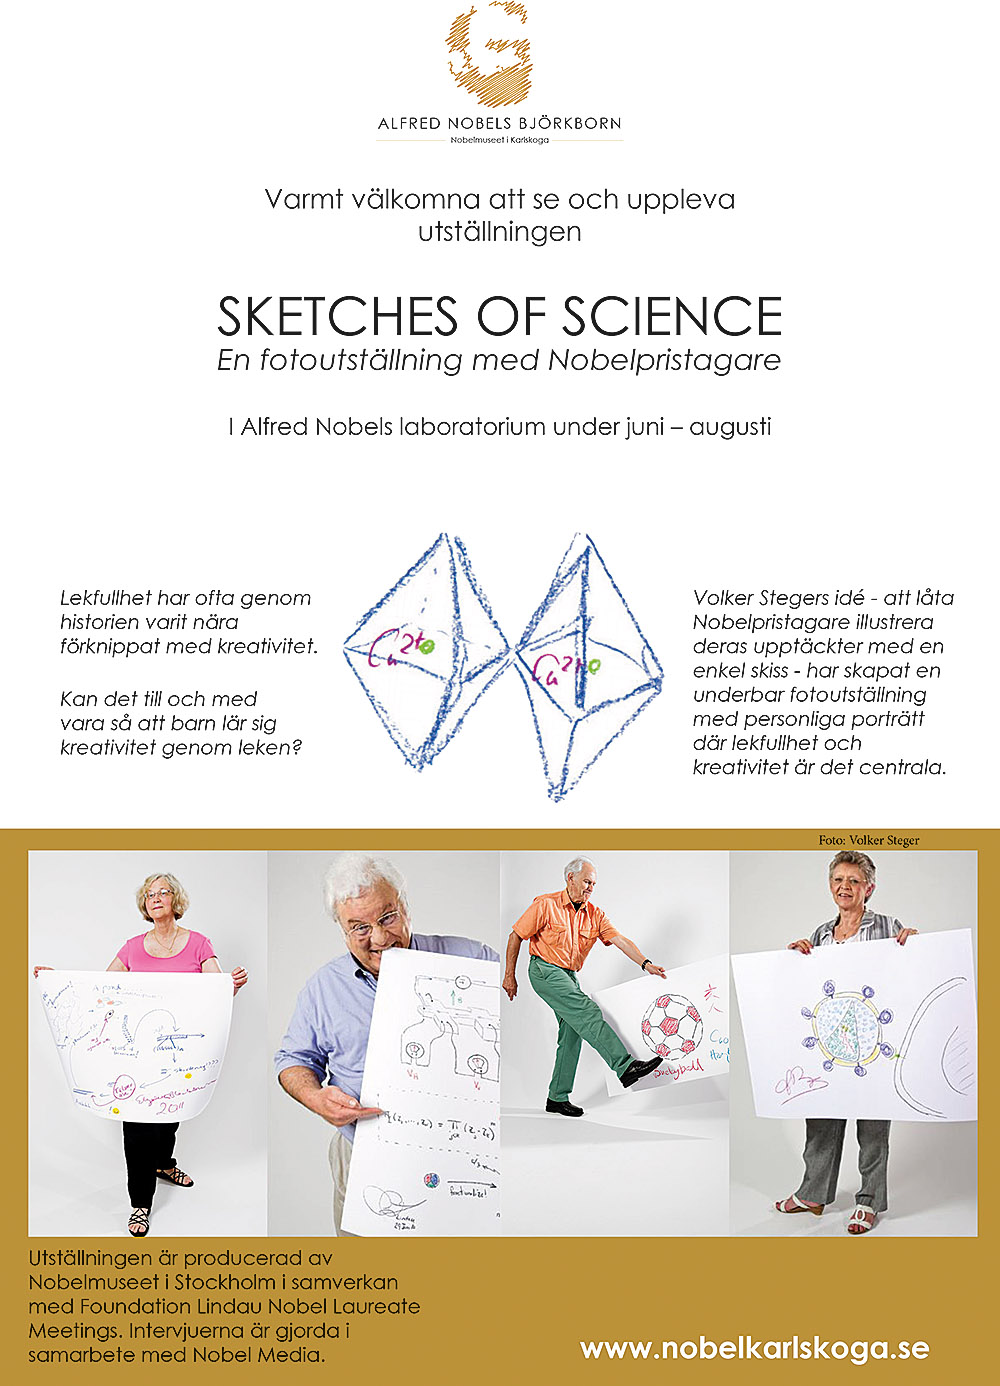 Sketches of Science